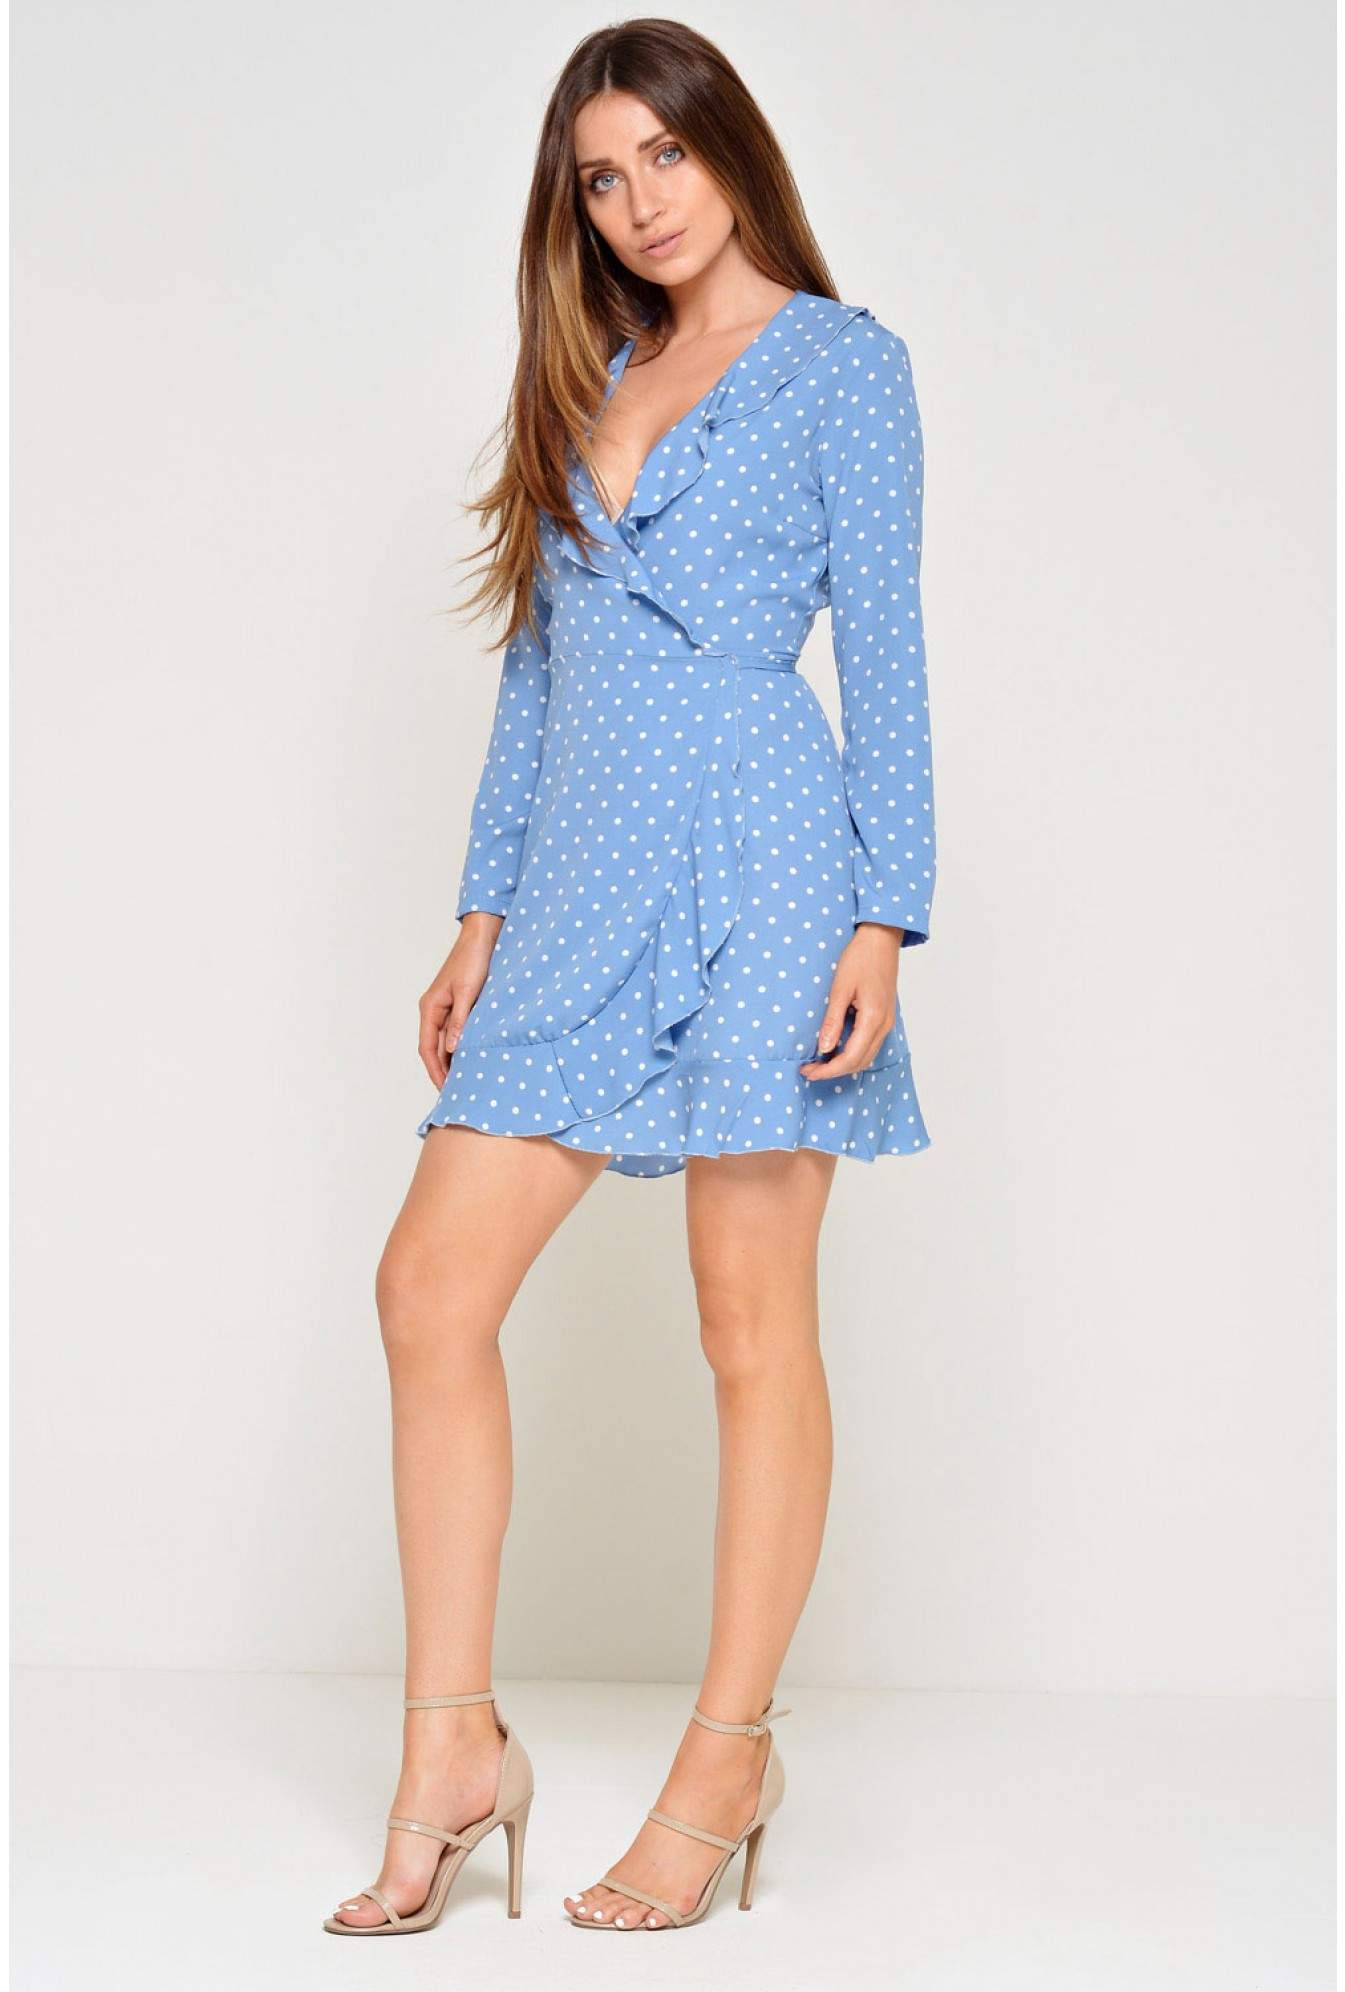 66330b4963c3 More Views. Kate Frill Wrap Dress in Blue Polka Dot. John Zack